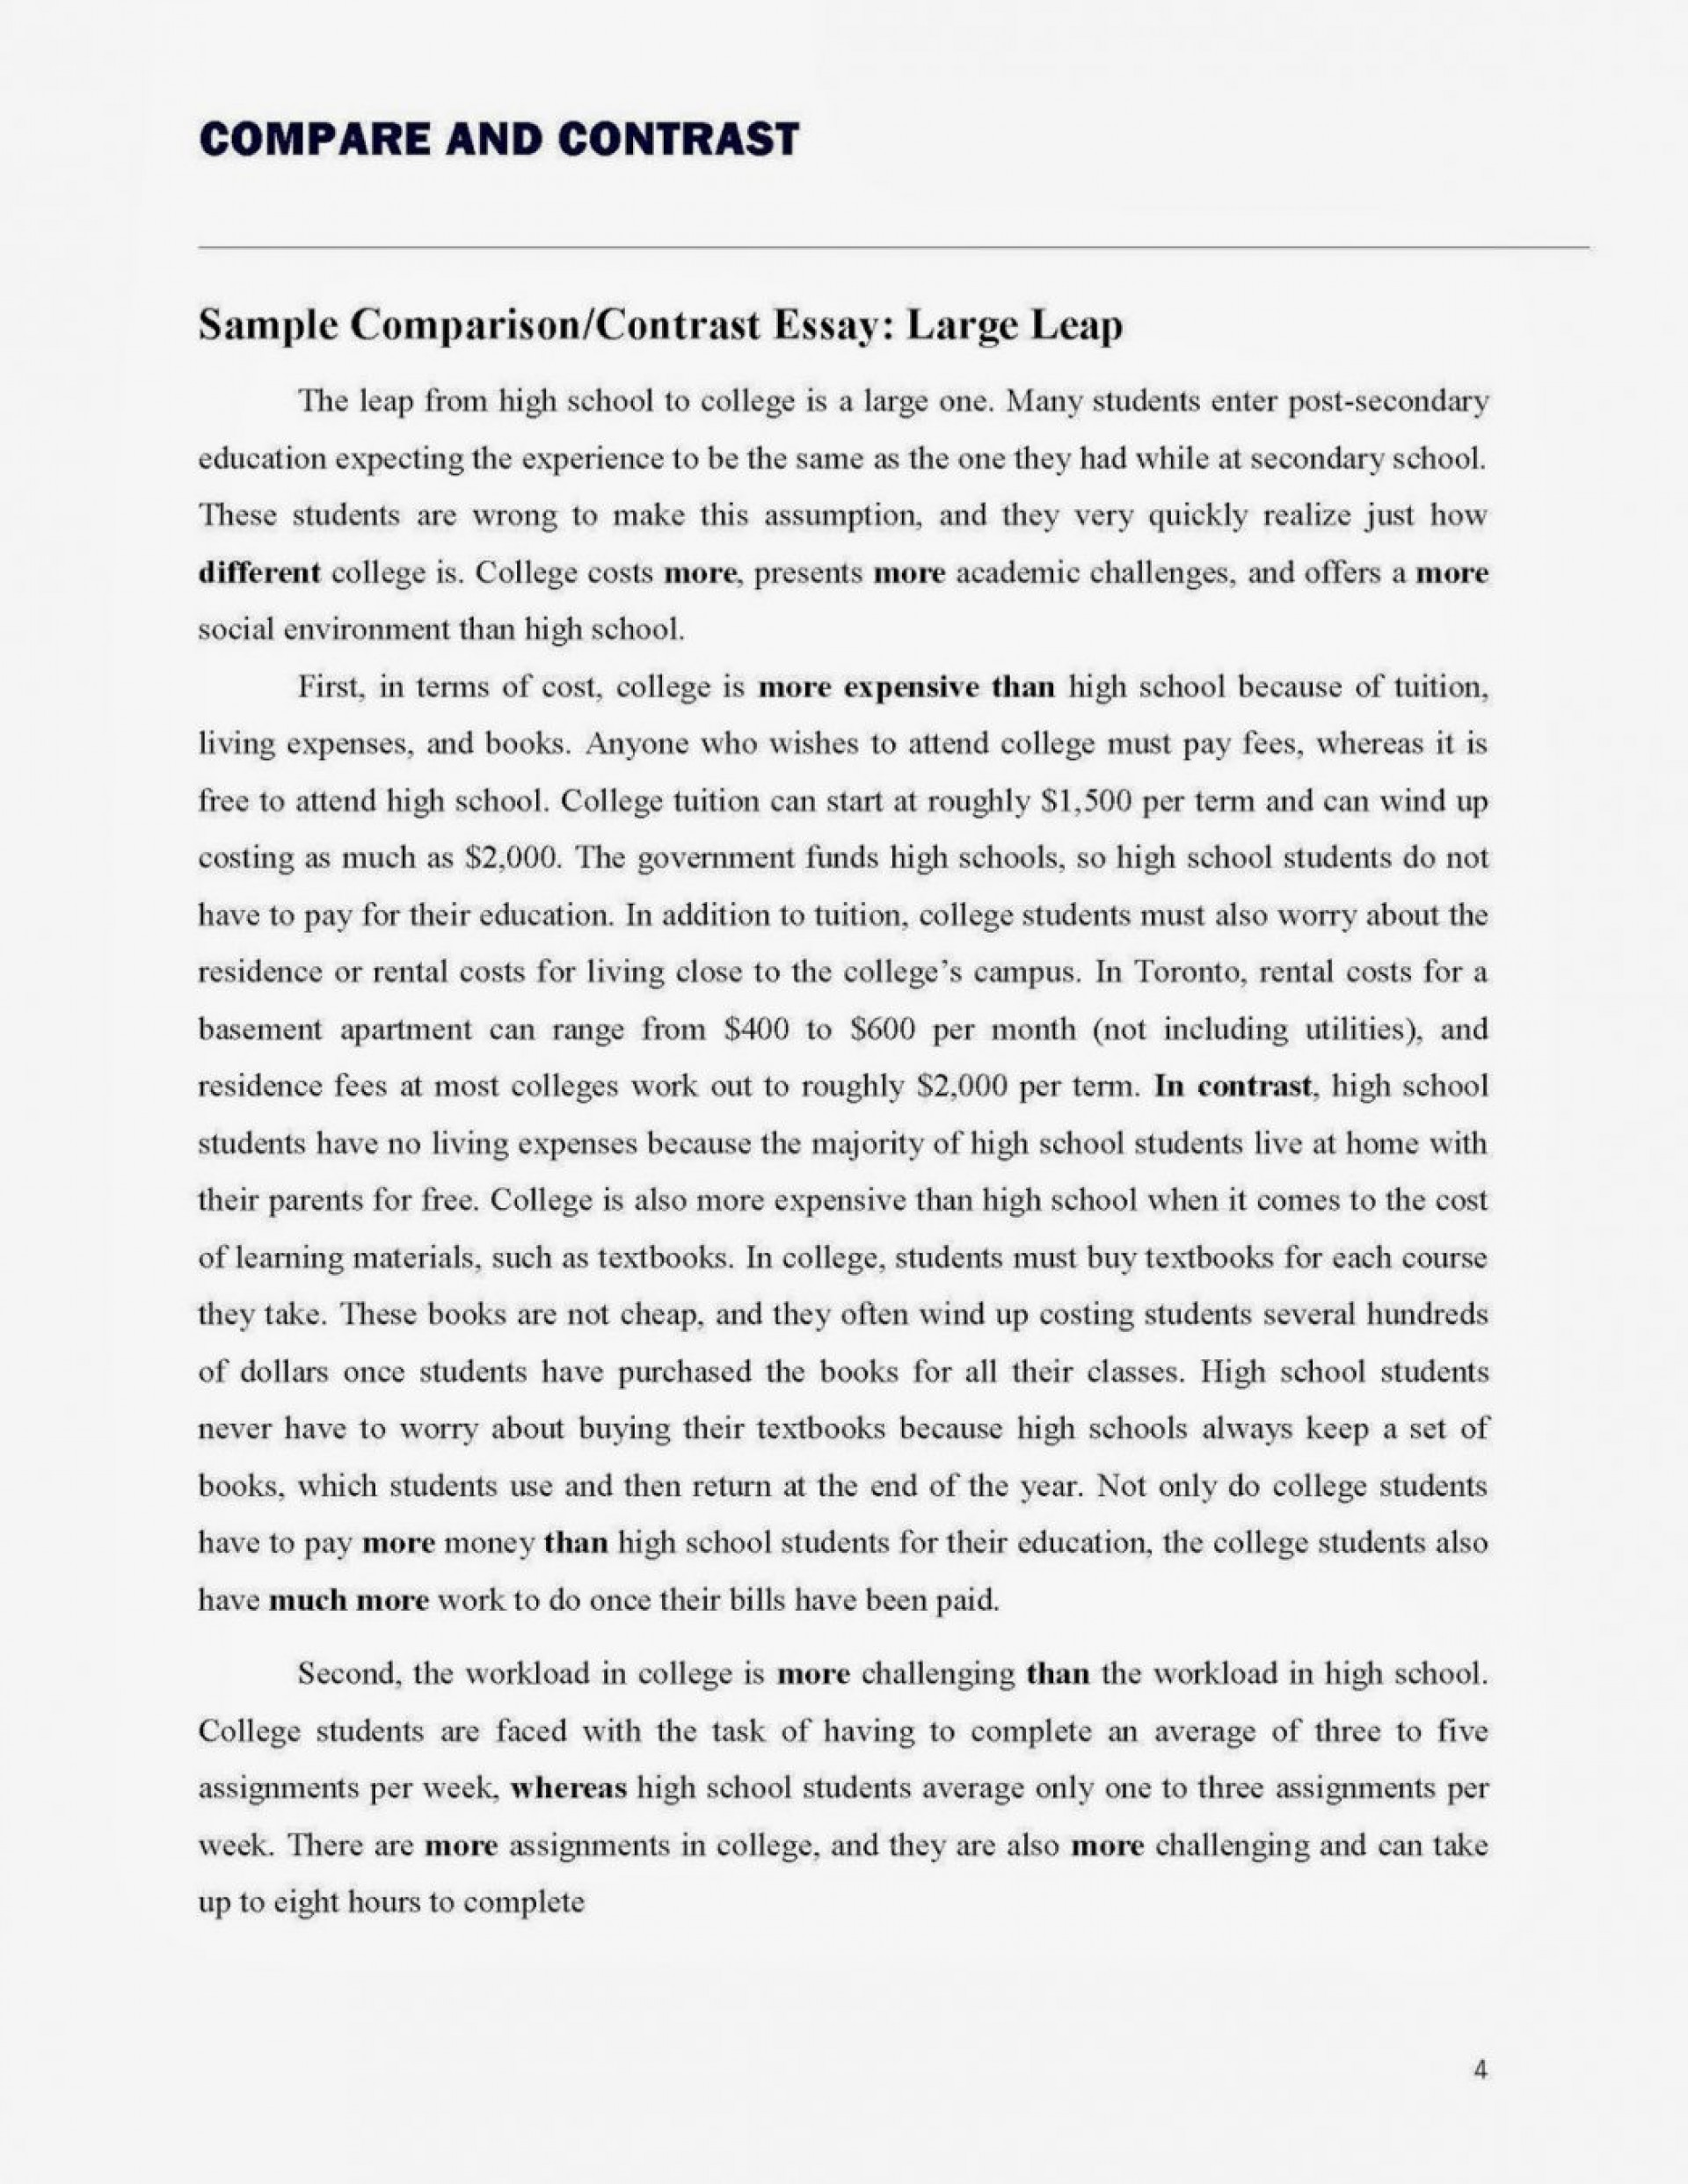 001 Comparisonssay Topic Compare Contrast Prompts Collegenglish T Level Topics Composition Samples For Students Pdfxamples Argumentative Persuasive Freshman 1048x1356 Staggering Comparison Essay Esl And Examples Middle School 1920